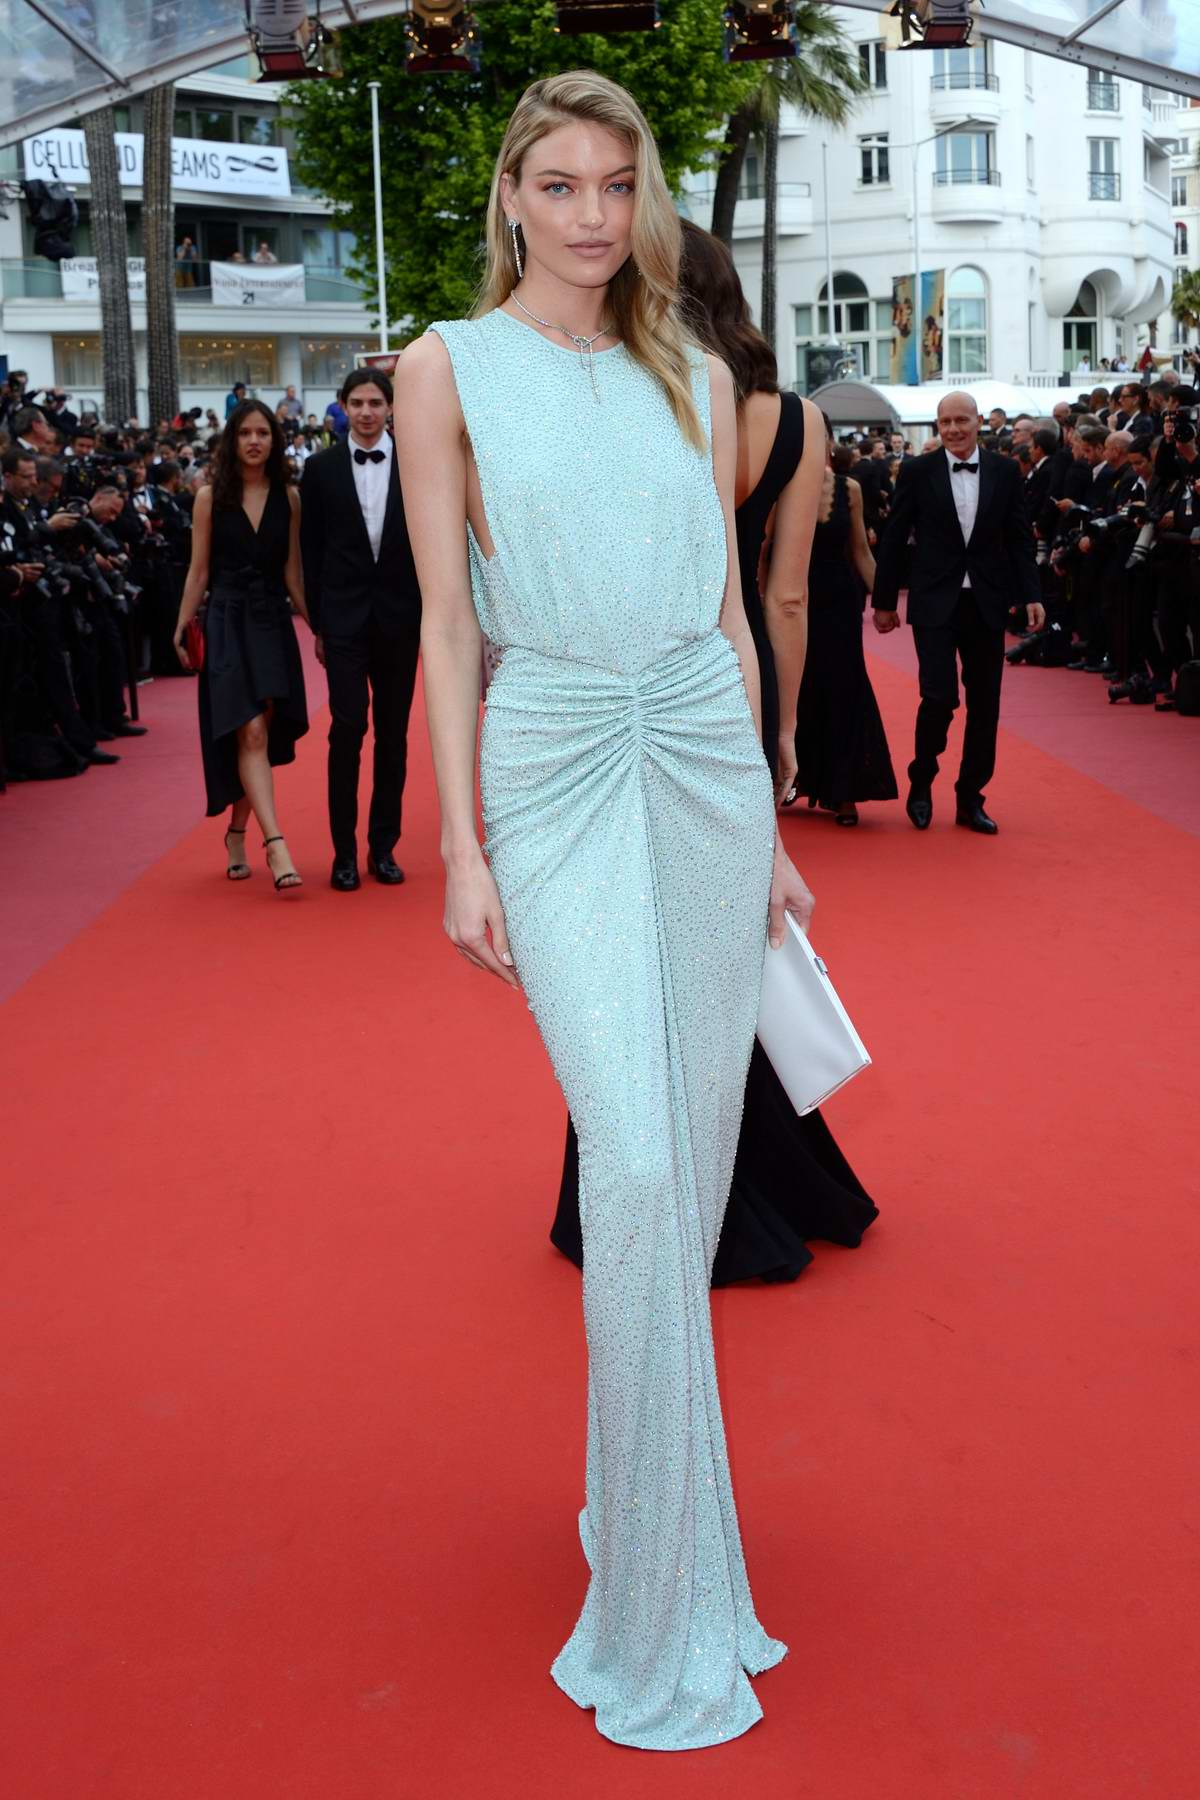 Martha Hunt attending 'The Wild Pear Tree' premiere during the 71st annual Cannes Film Festival in Cannes, France